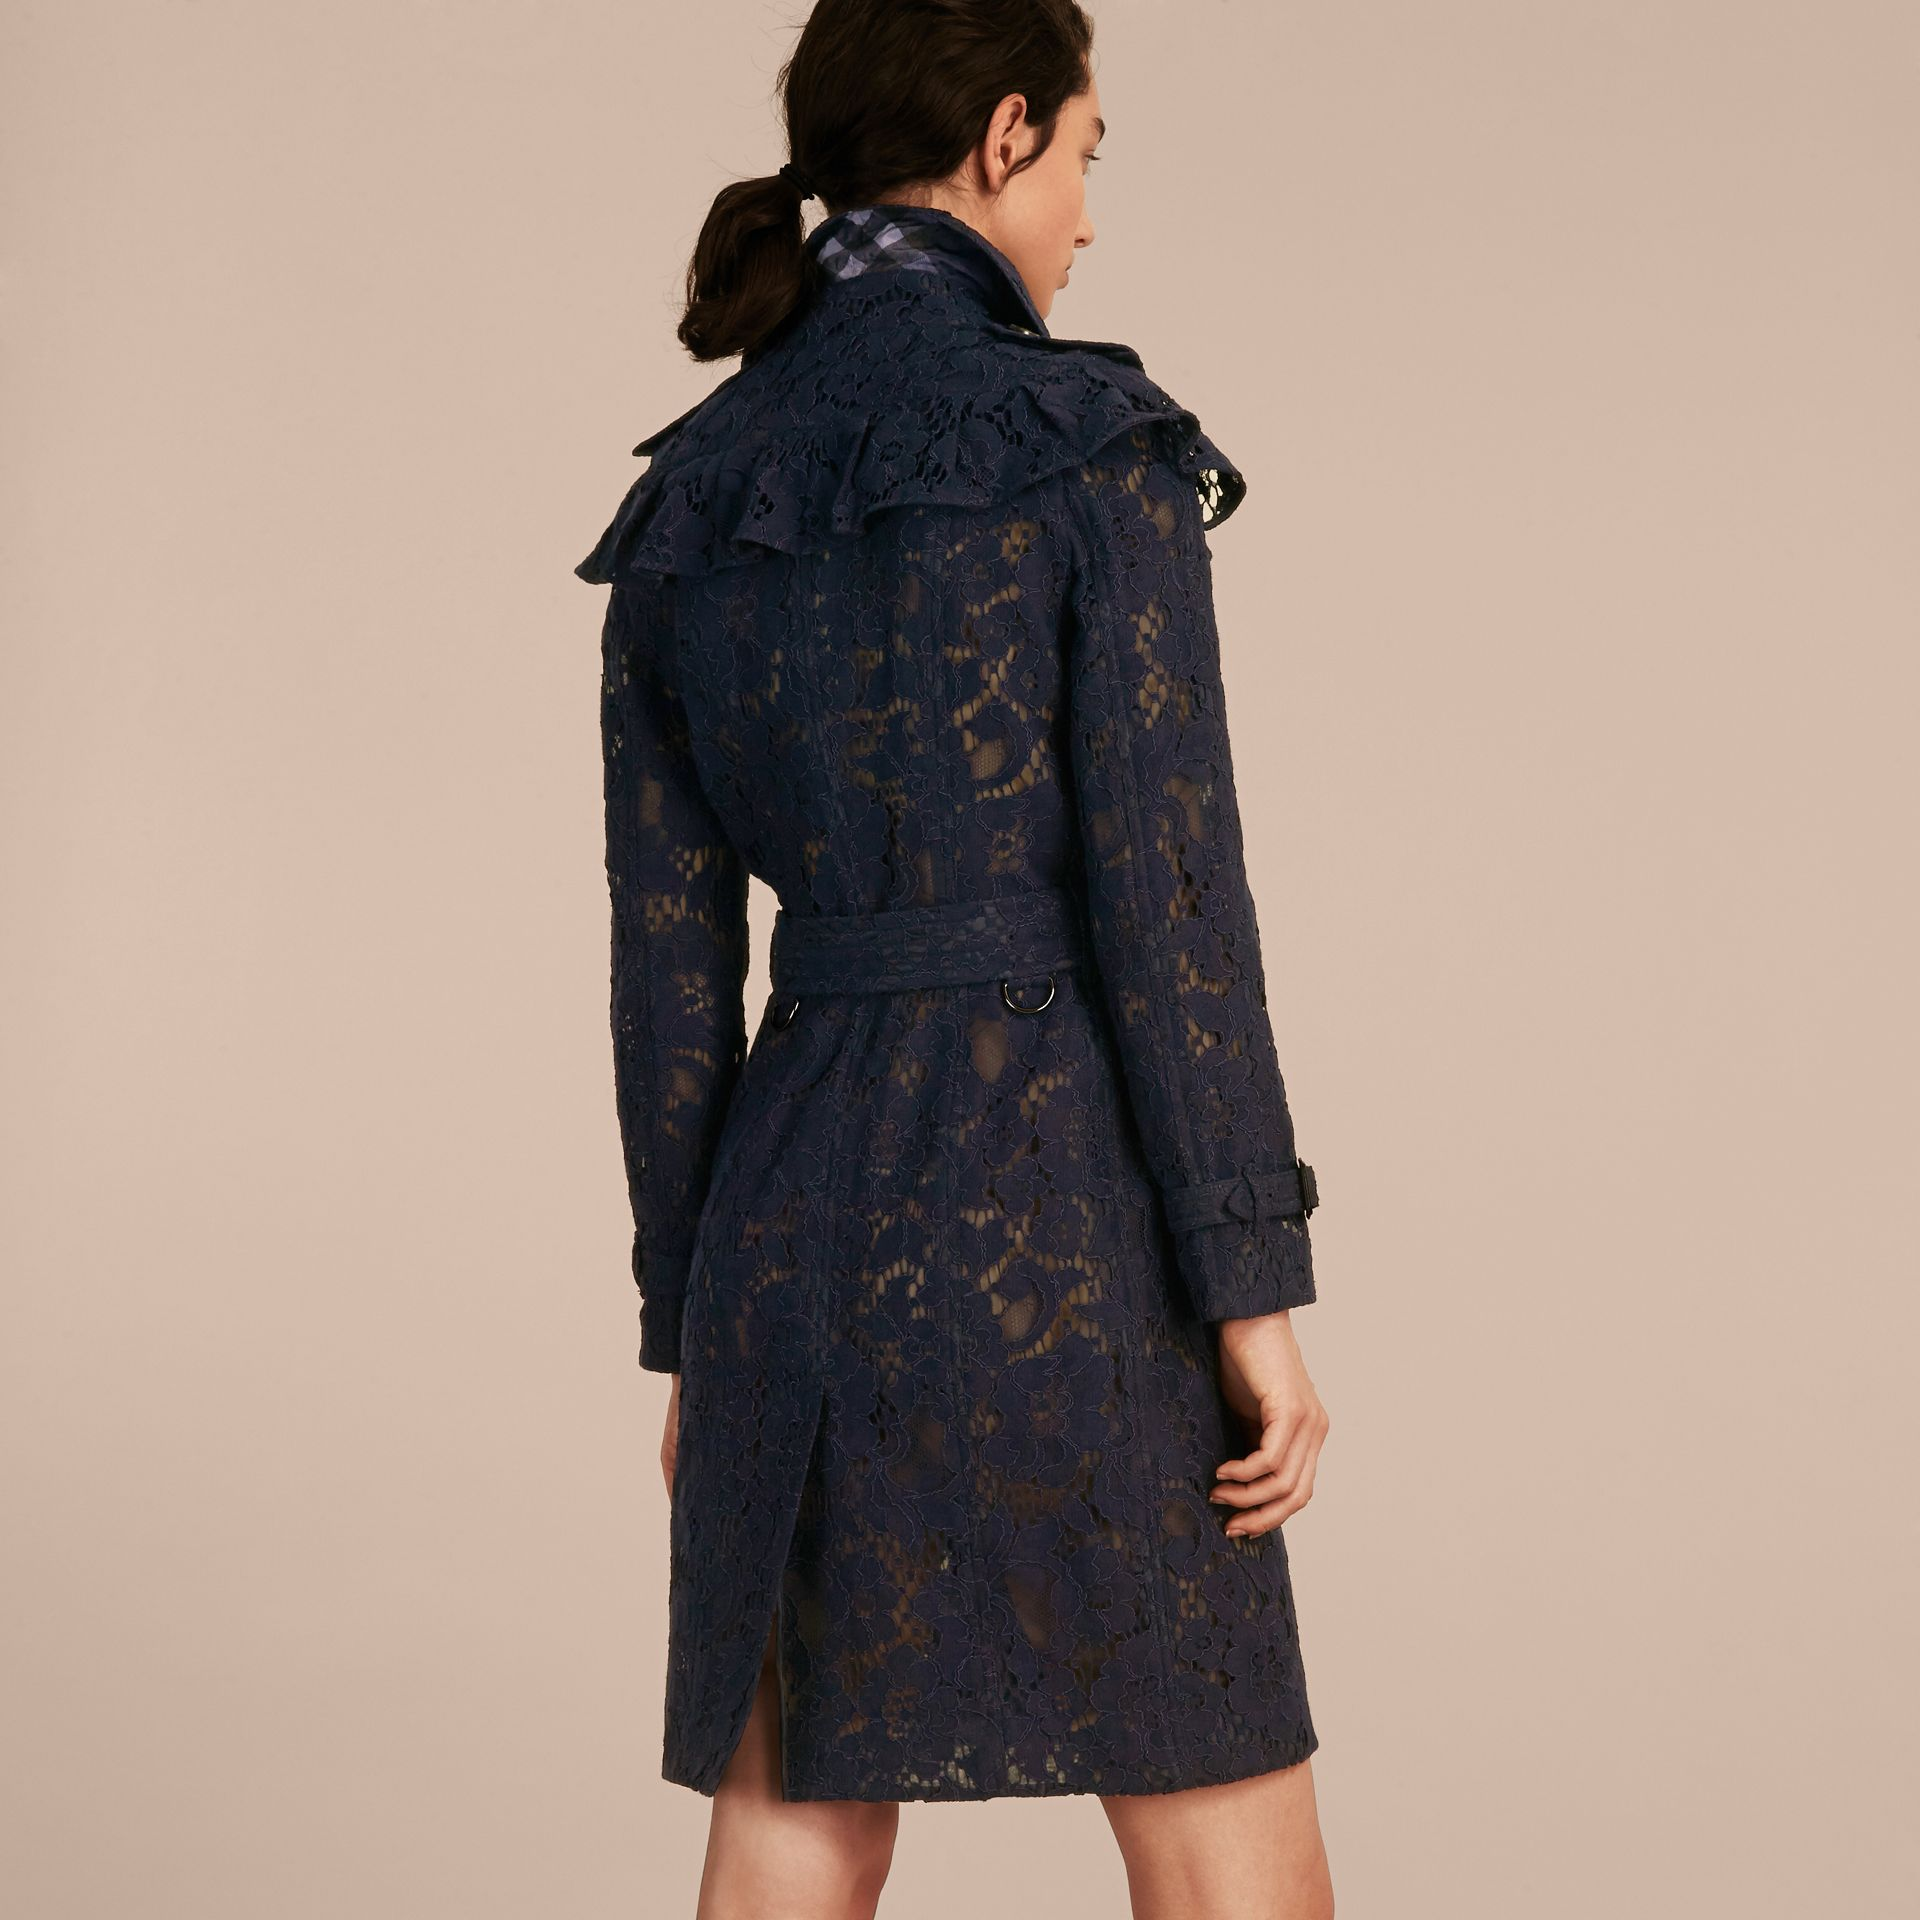 Ruffle Detail Macramé Lace Trench Coat Navy - gallery image 3